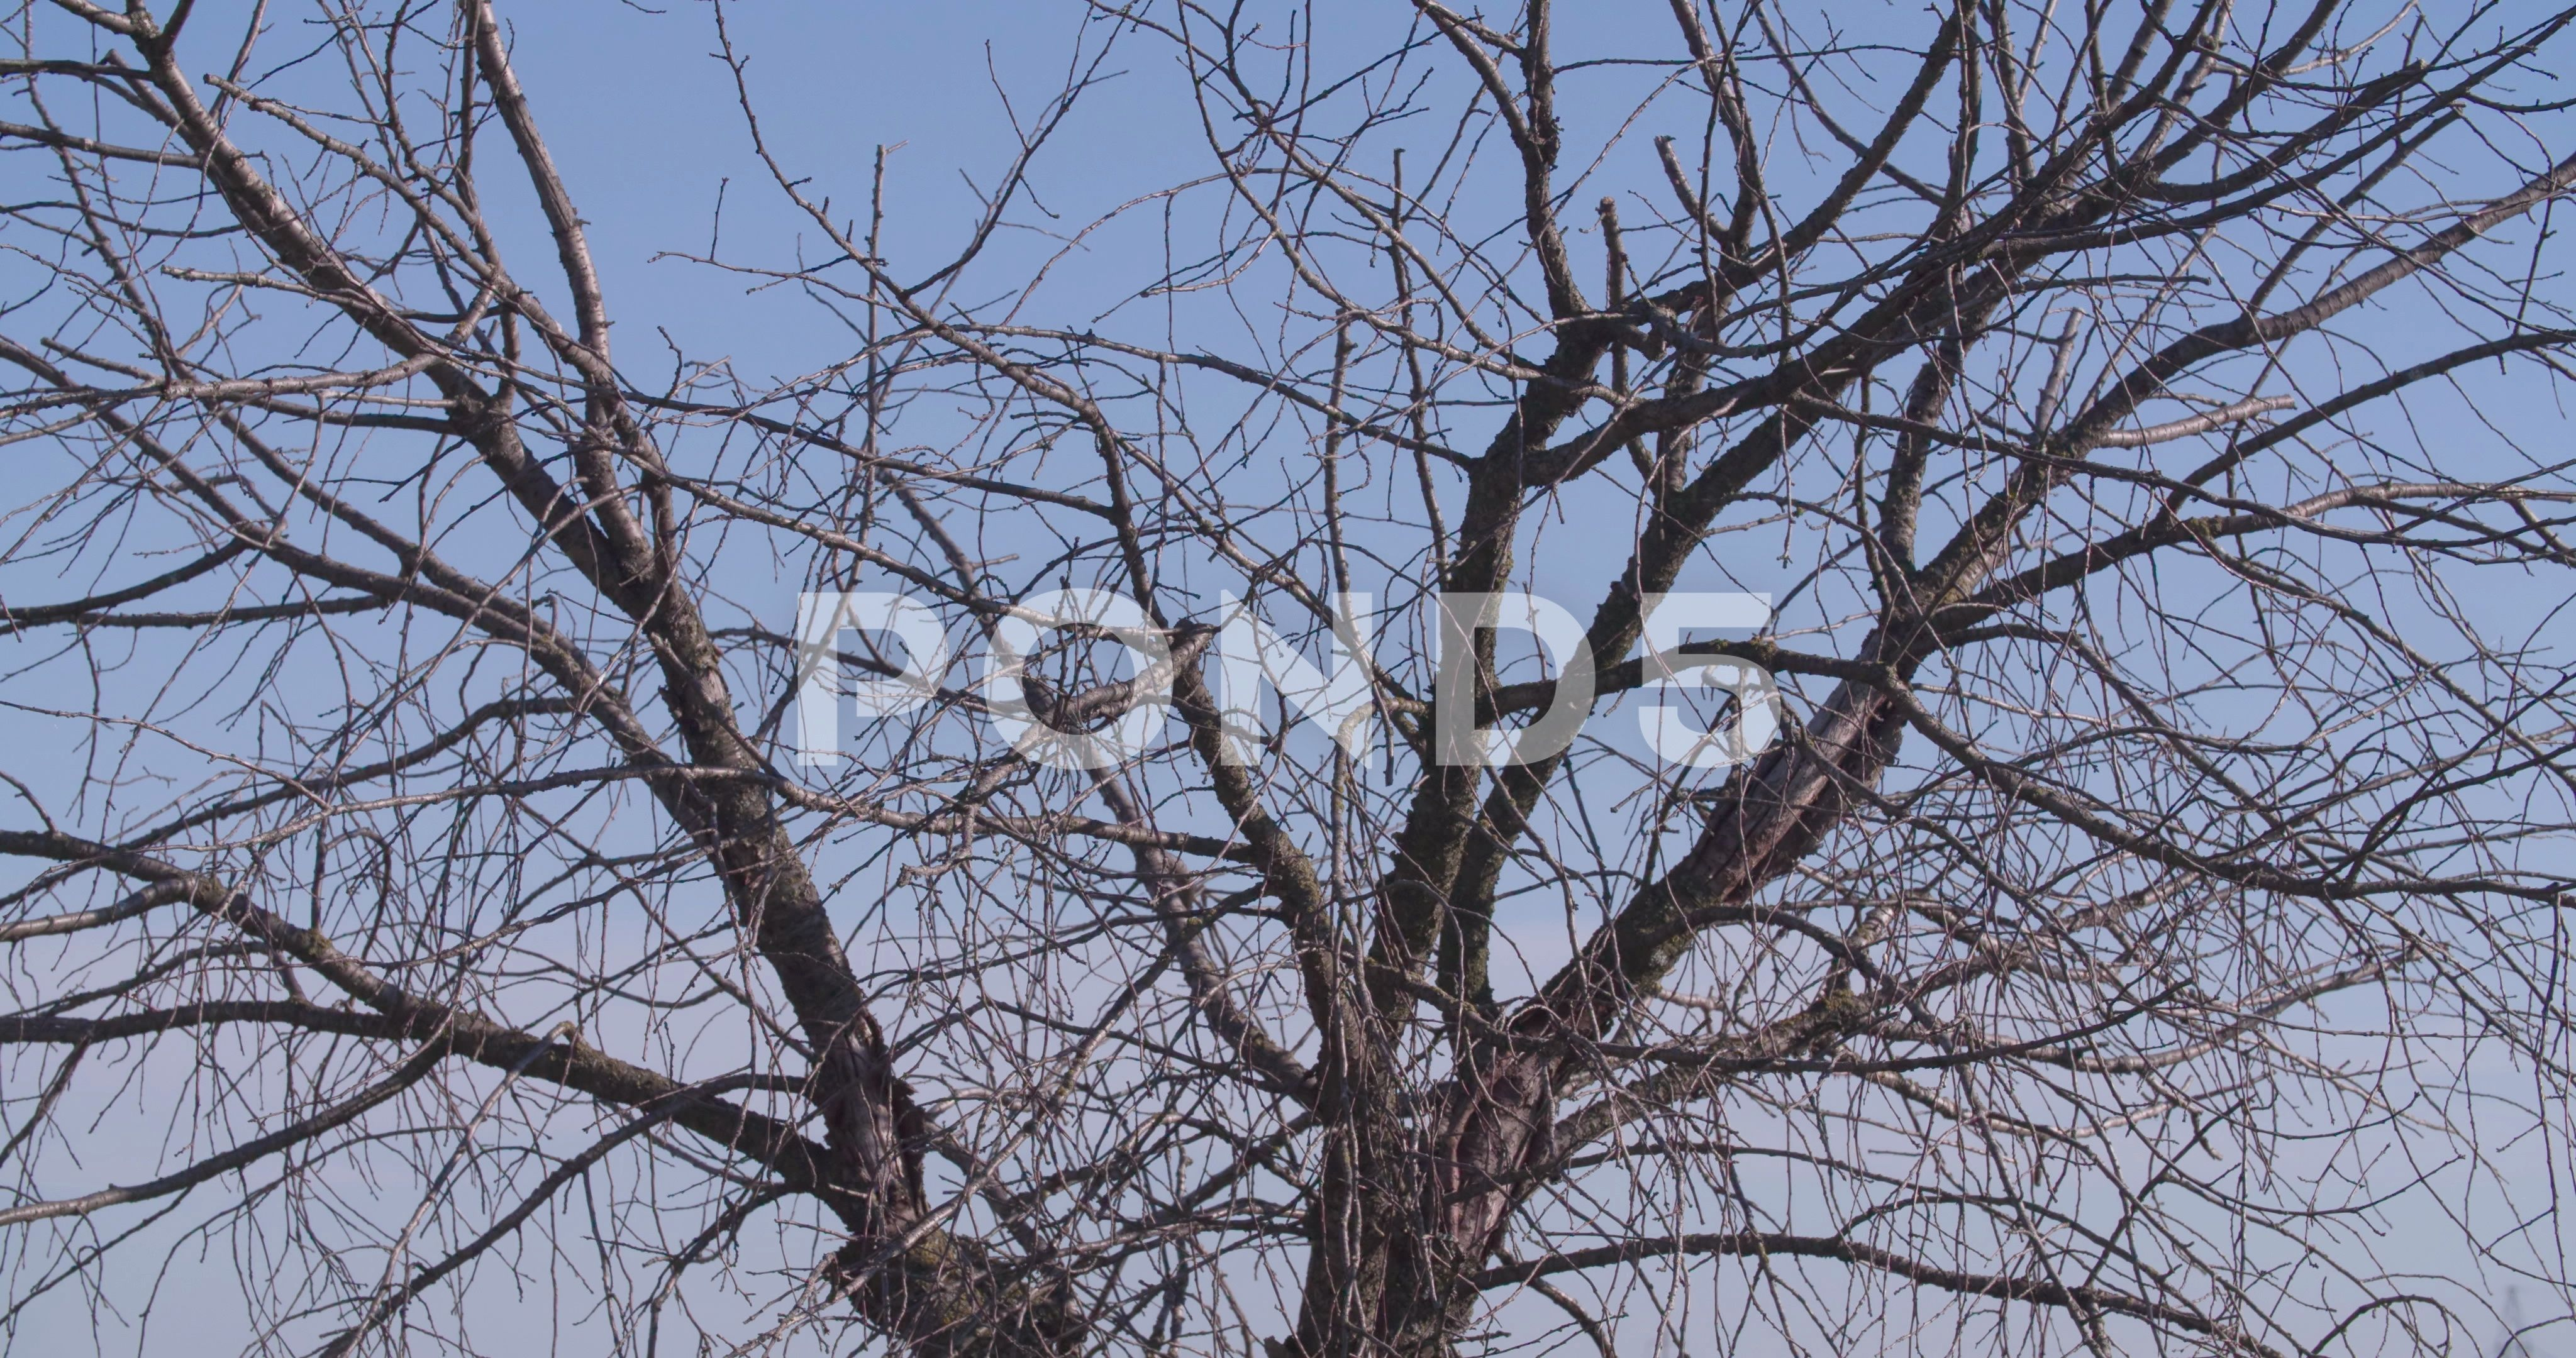 Dry Tree Without Leaves 4k Nature Video Autumn Tree Branches On Clear Sky Stock Footage Nature Video Leaves Dry Dry Tree Nature Gif Autumn Tree Branch